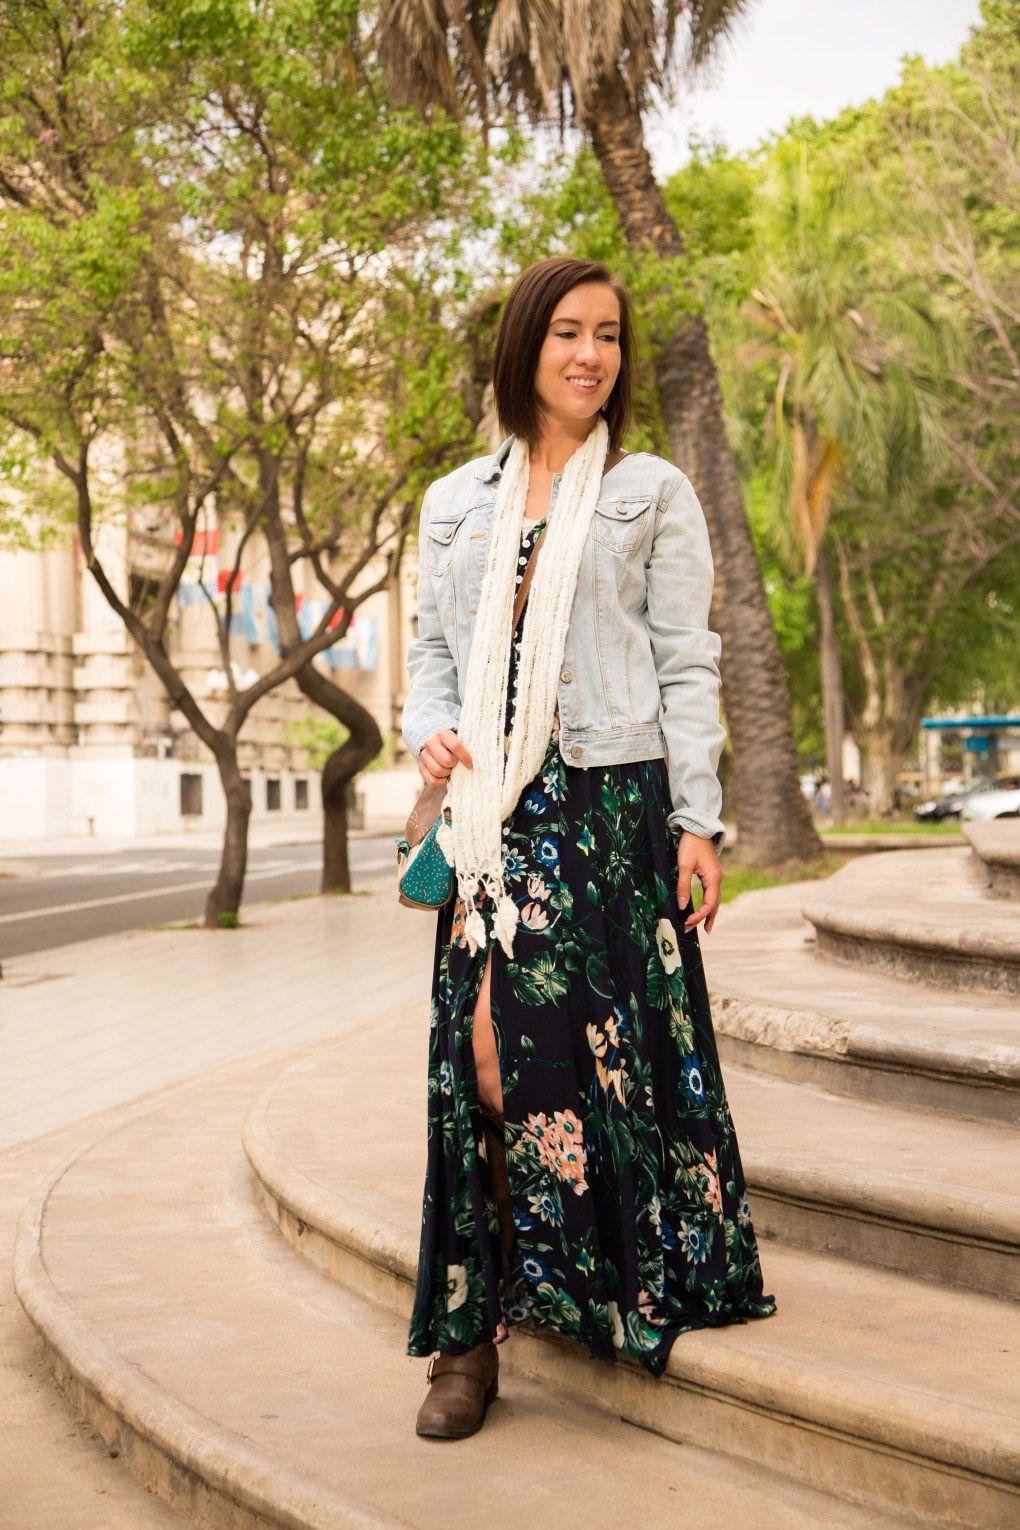 Styling A Floral Maxi Dress For Fall Maxi Dress Outfit Fall Maxi Dresses Fall Floral Maxi Dress